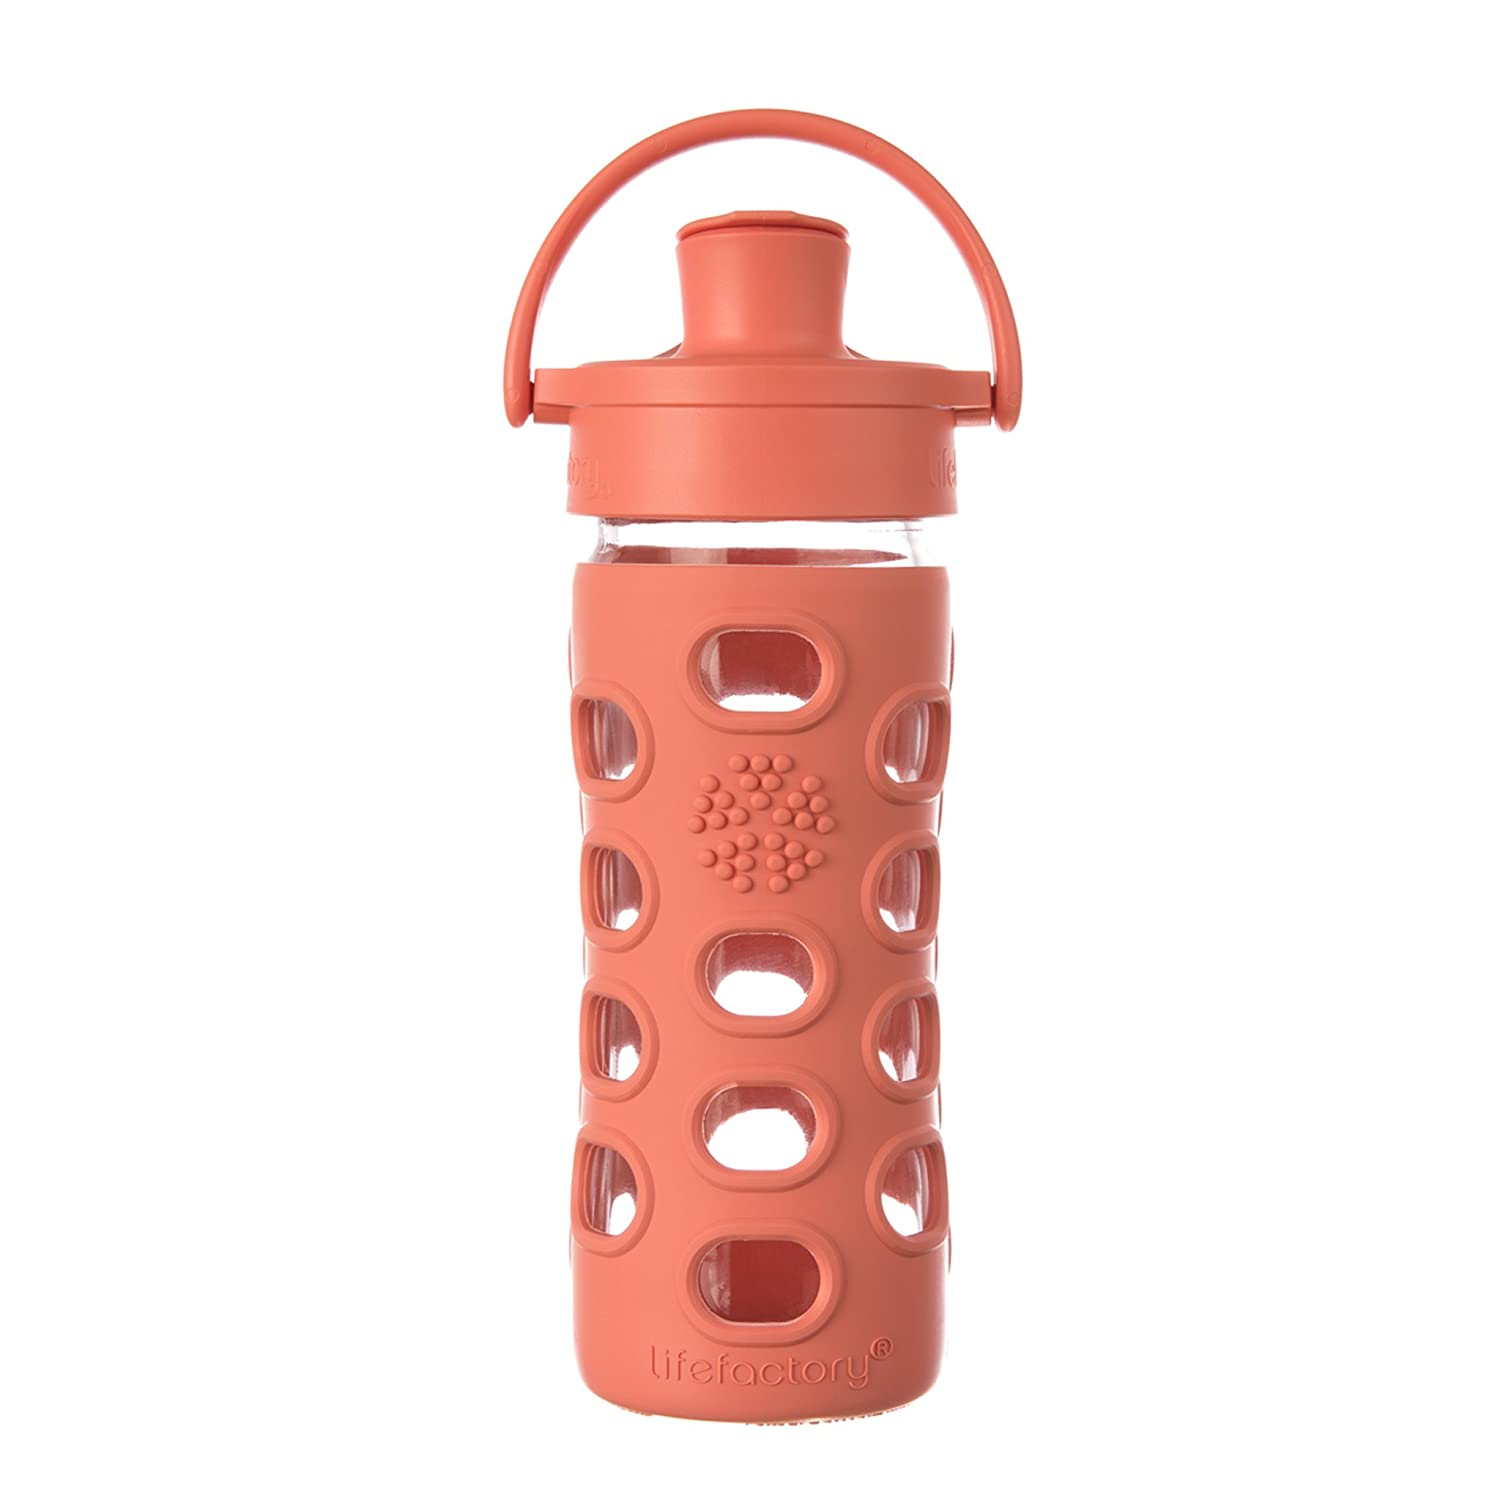 Lifefactory 12-Ounce BPA-Free Glass Water Bottle with Active Flip Cap and Silicone Sleeve, Kale 512002